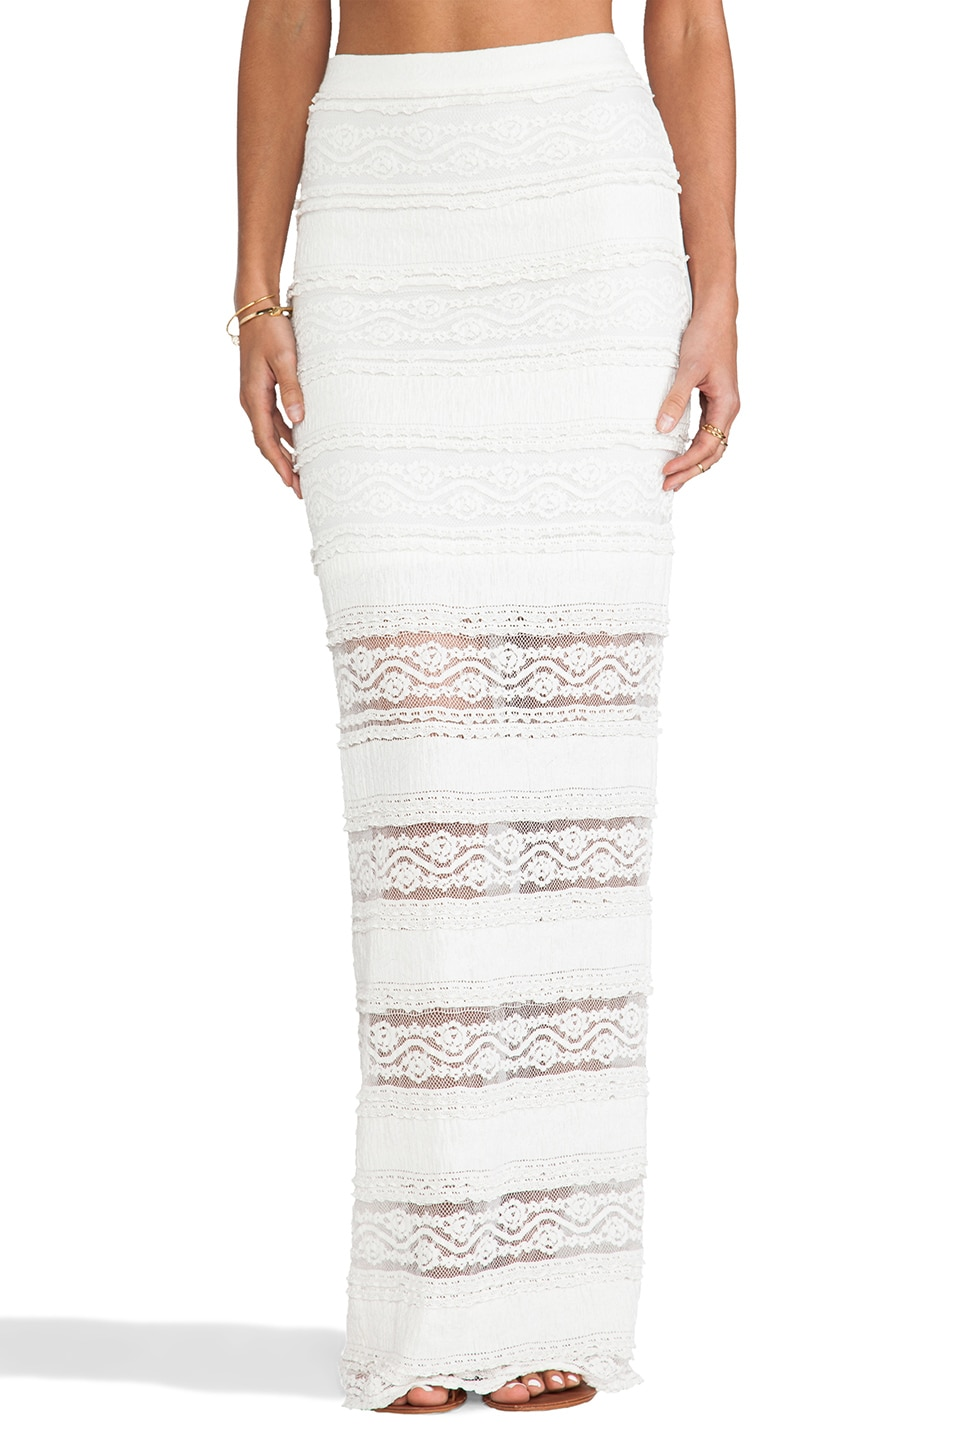 Alice + Olivia Ettley Lace Maxi Skirt in Cream